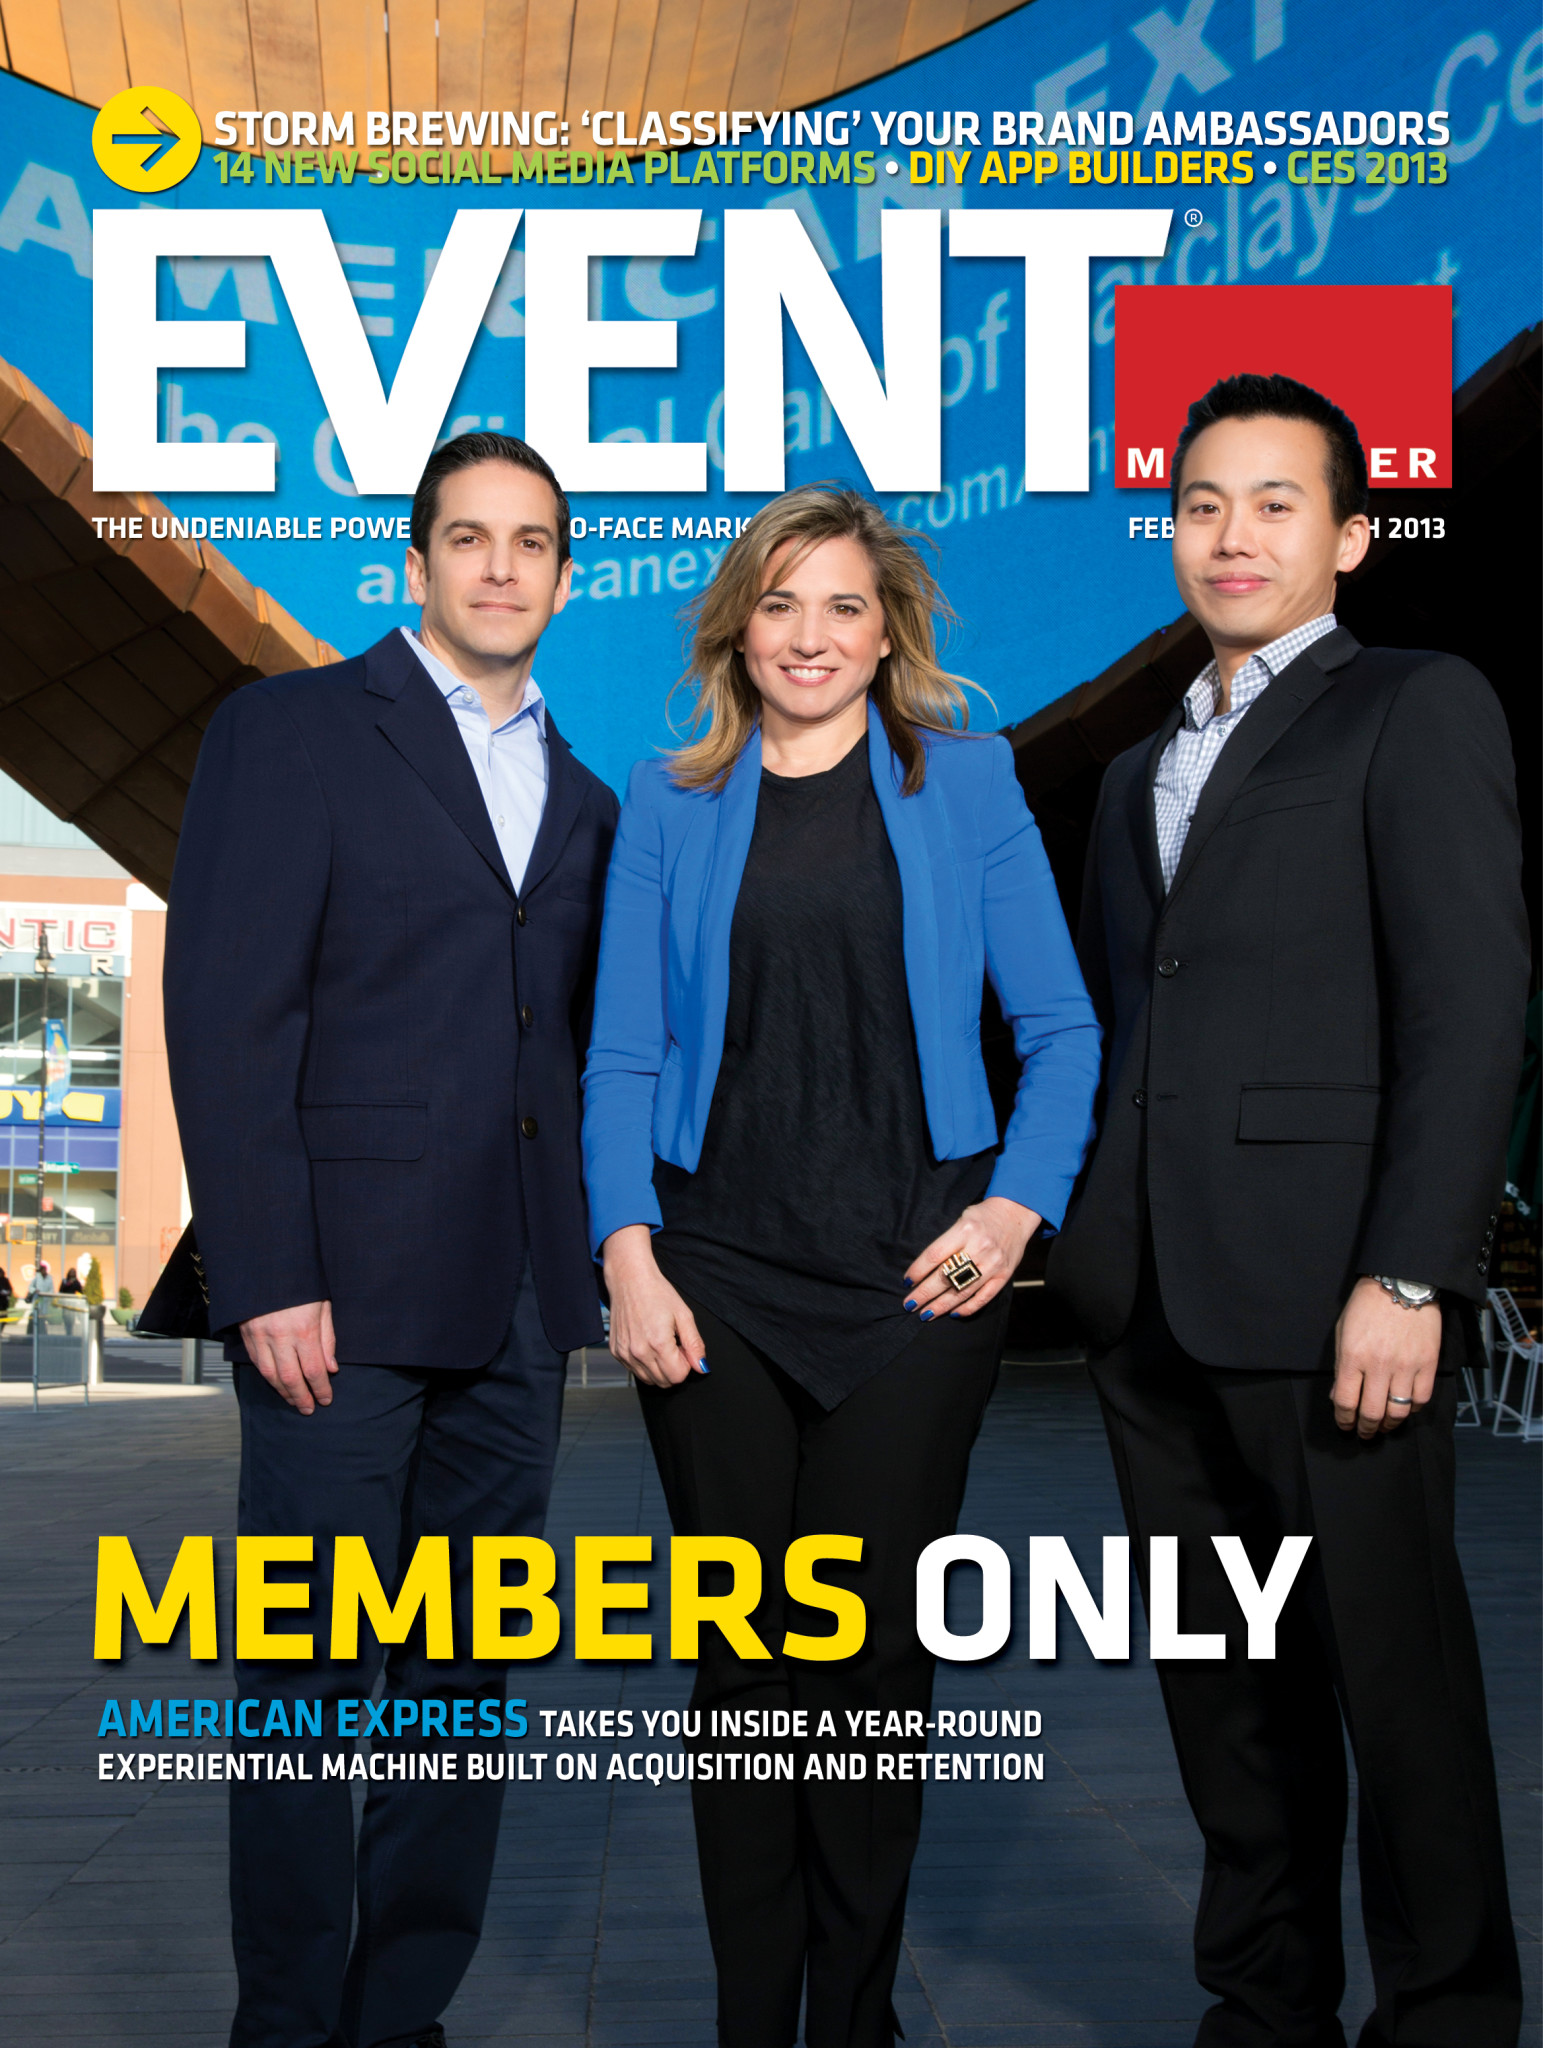 Event Marketer February/March 2013 Issue